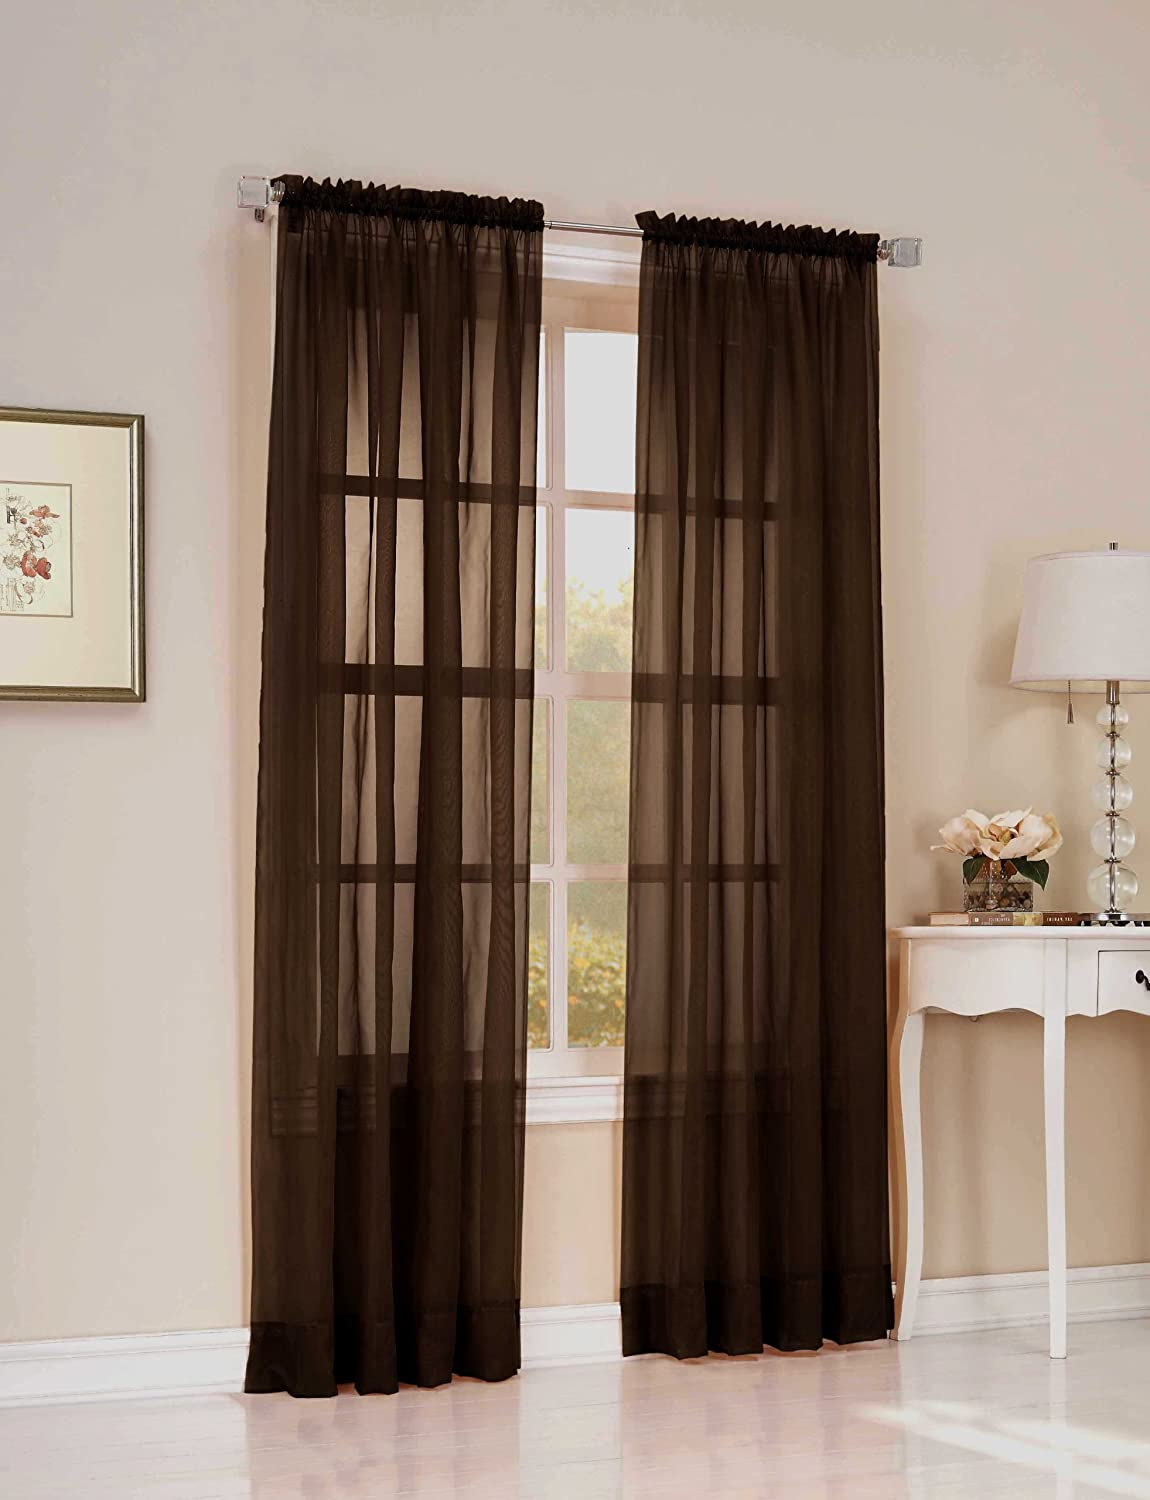 Easy Care Fabrics Solid Sheer Window Curtains/Drape/Panels/Treatment 55-Inch x 63-Inch, Chocolate GMA 104644.0